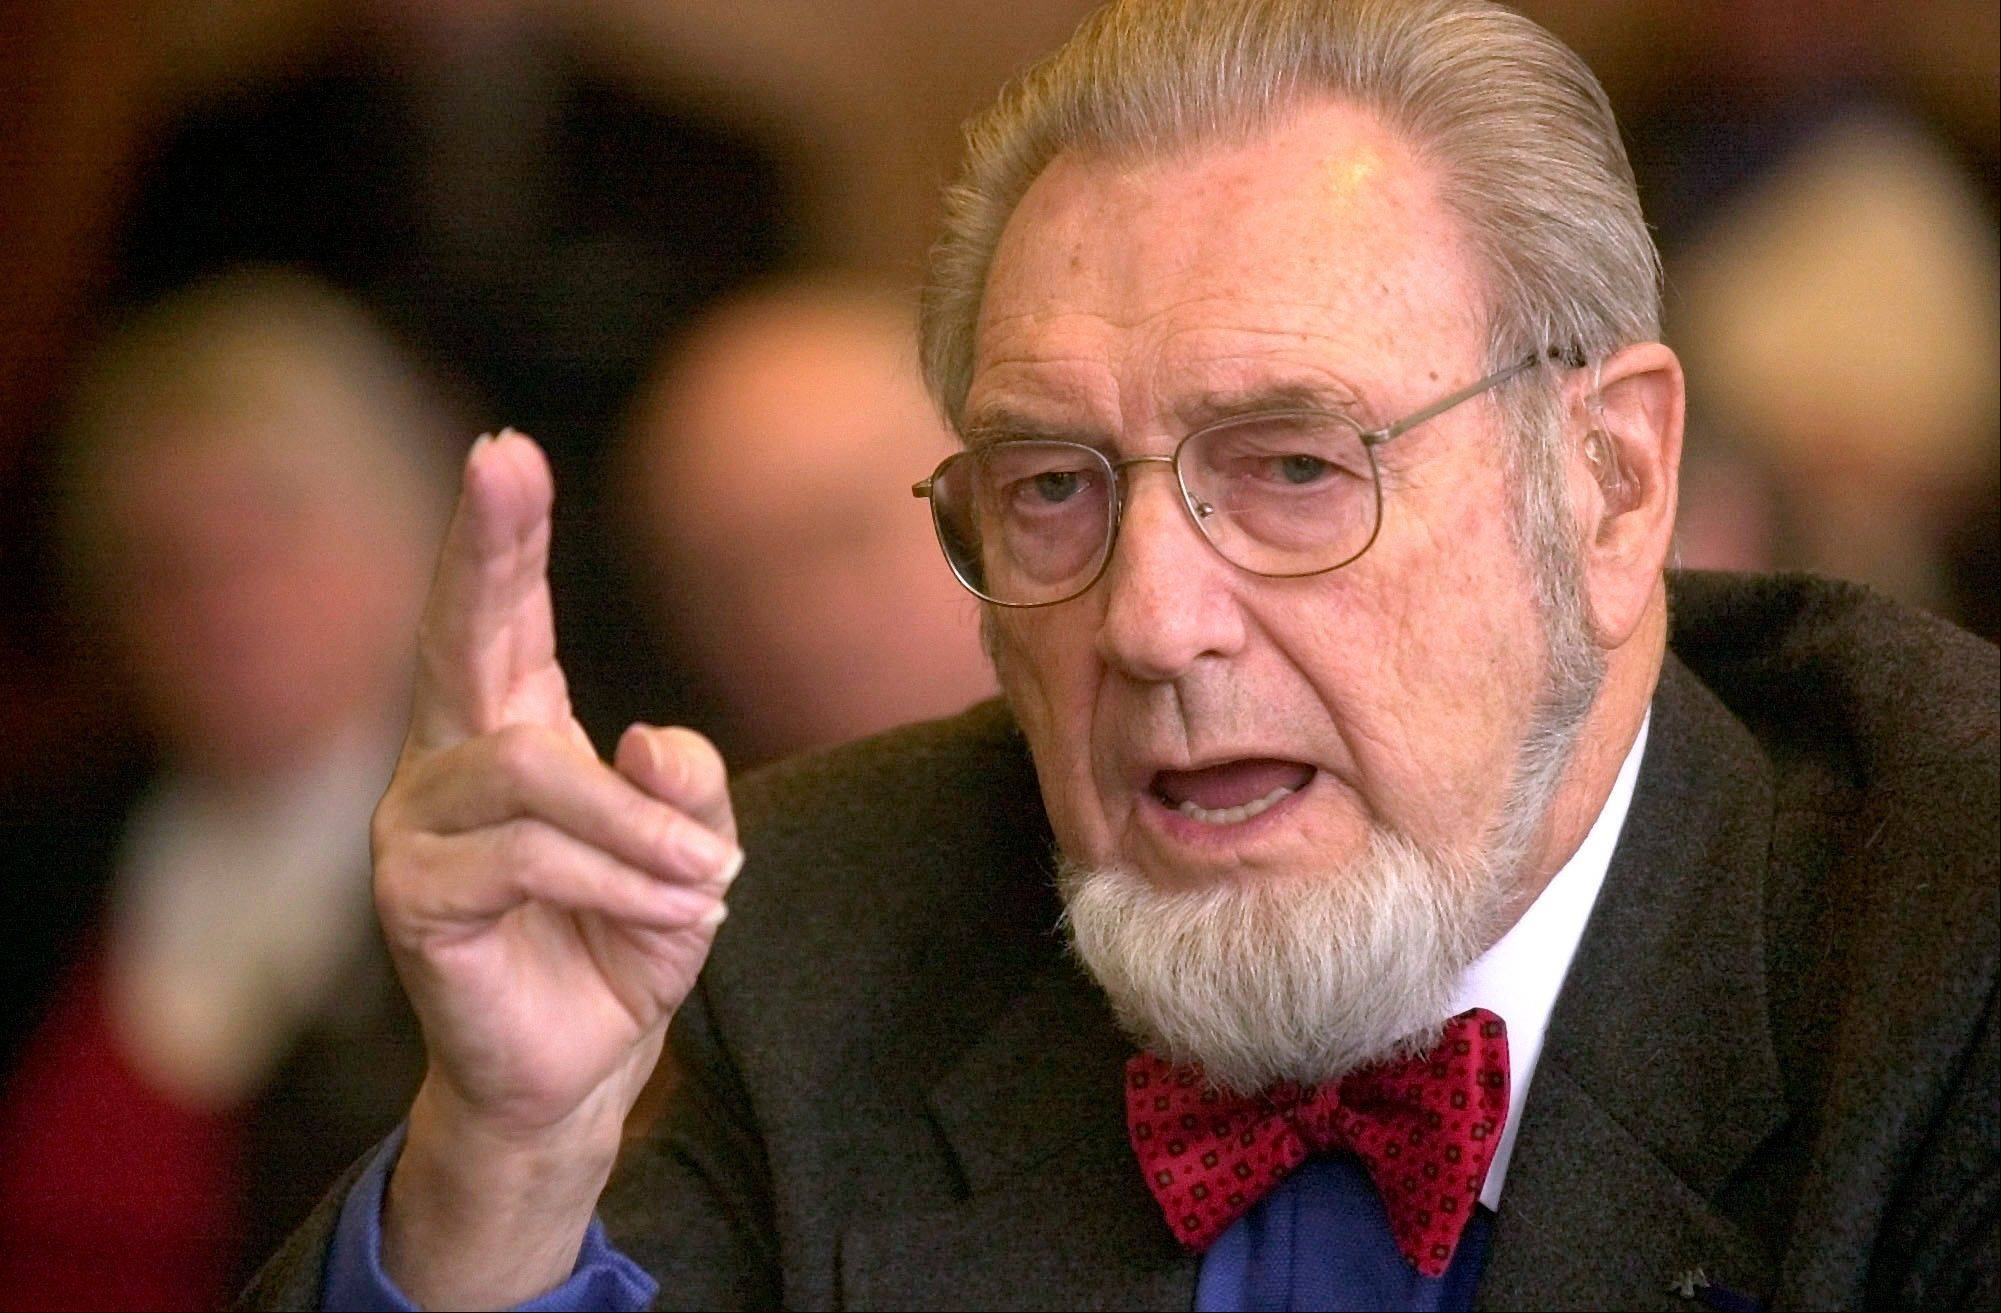 In this Feb. 12, 2002 file photo, former U.S. Surgeon General Dr. C. Everett Koop testifies in Concord, N.H. Koop, who raised the profile of the surgeon general by riveting America's attention on the then-emerging disease known as AIDS and by railing against smoking, died Feb. 25, 2013. He was 96.